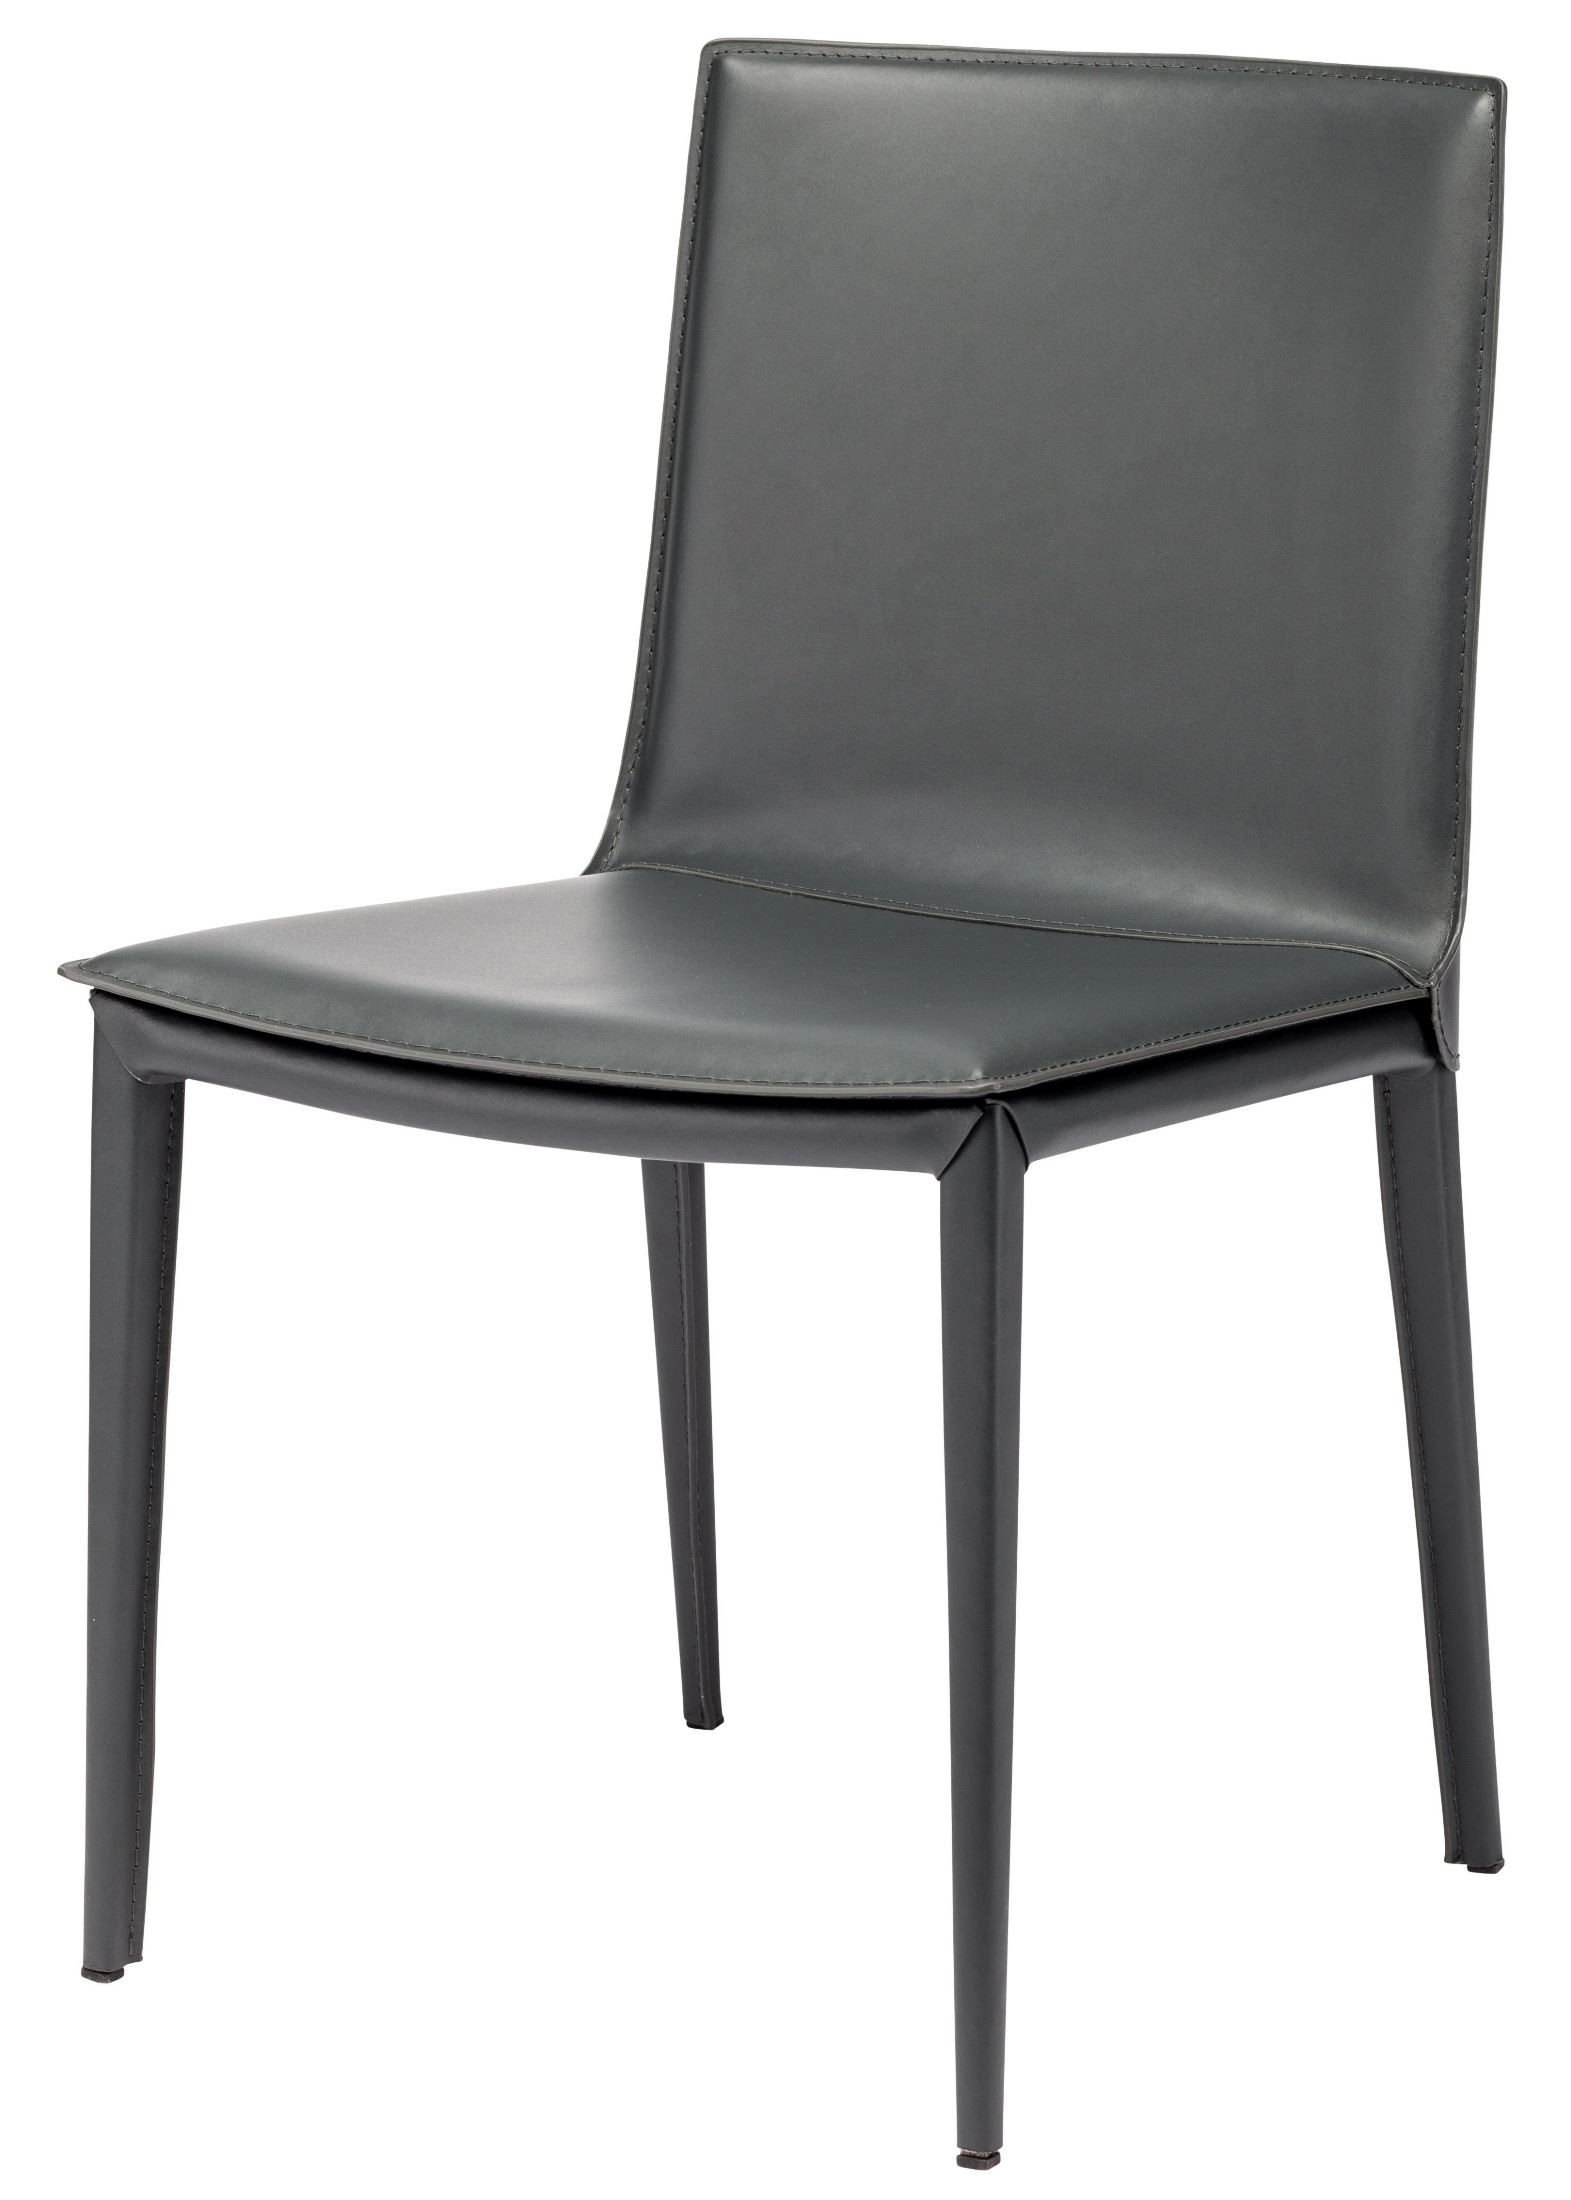 palma grey leather dining chair hgnd100 nuevo. Black Bedroom Furniture Sets. Home Design Ideas